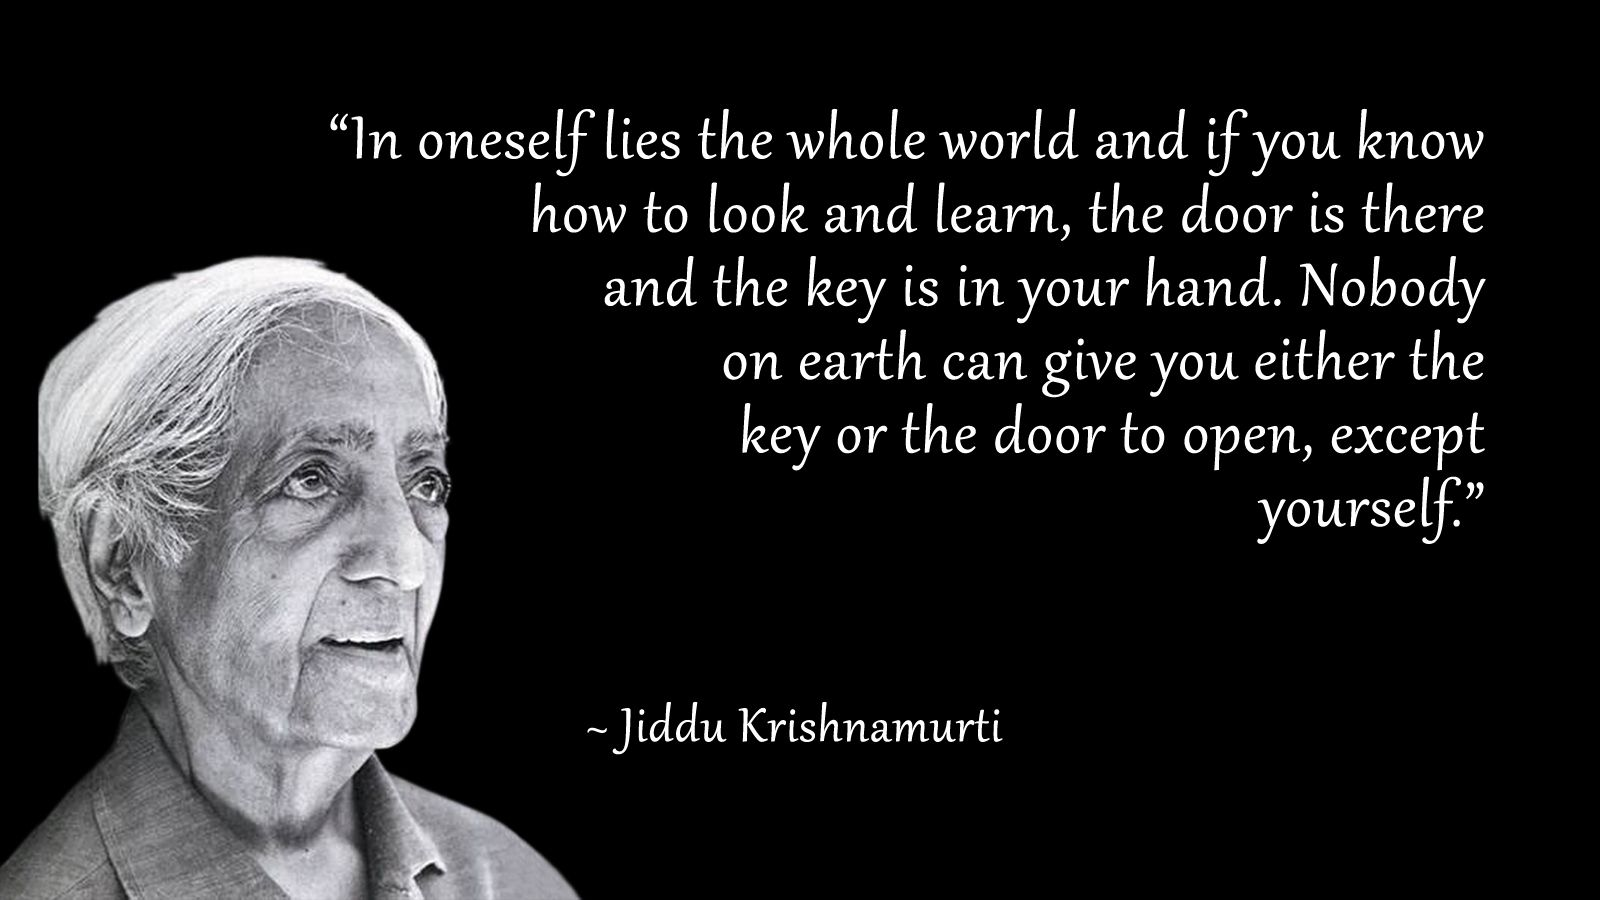 Zen Quotes On Life Jiddu Krishnamurti Quotesquotesgram  Krishnamourti  Pinterest